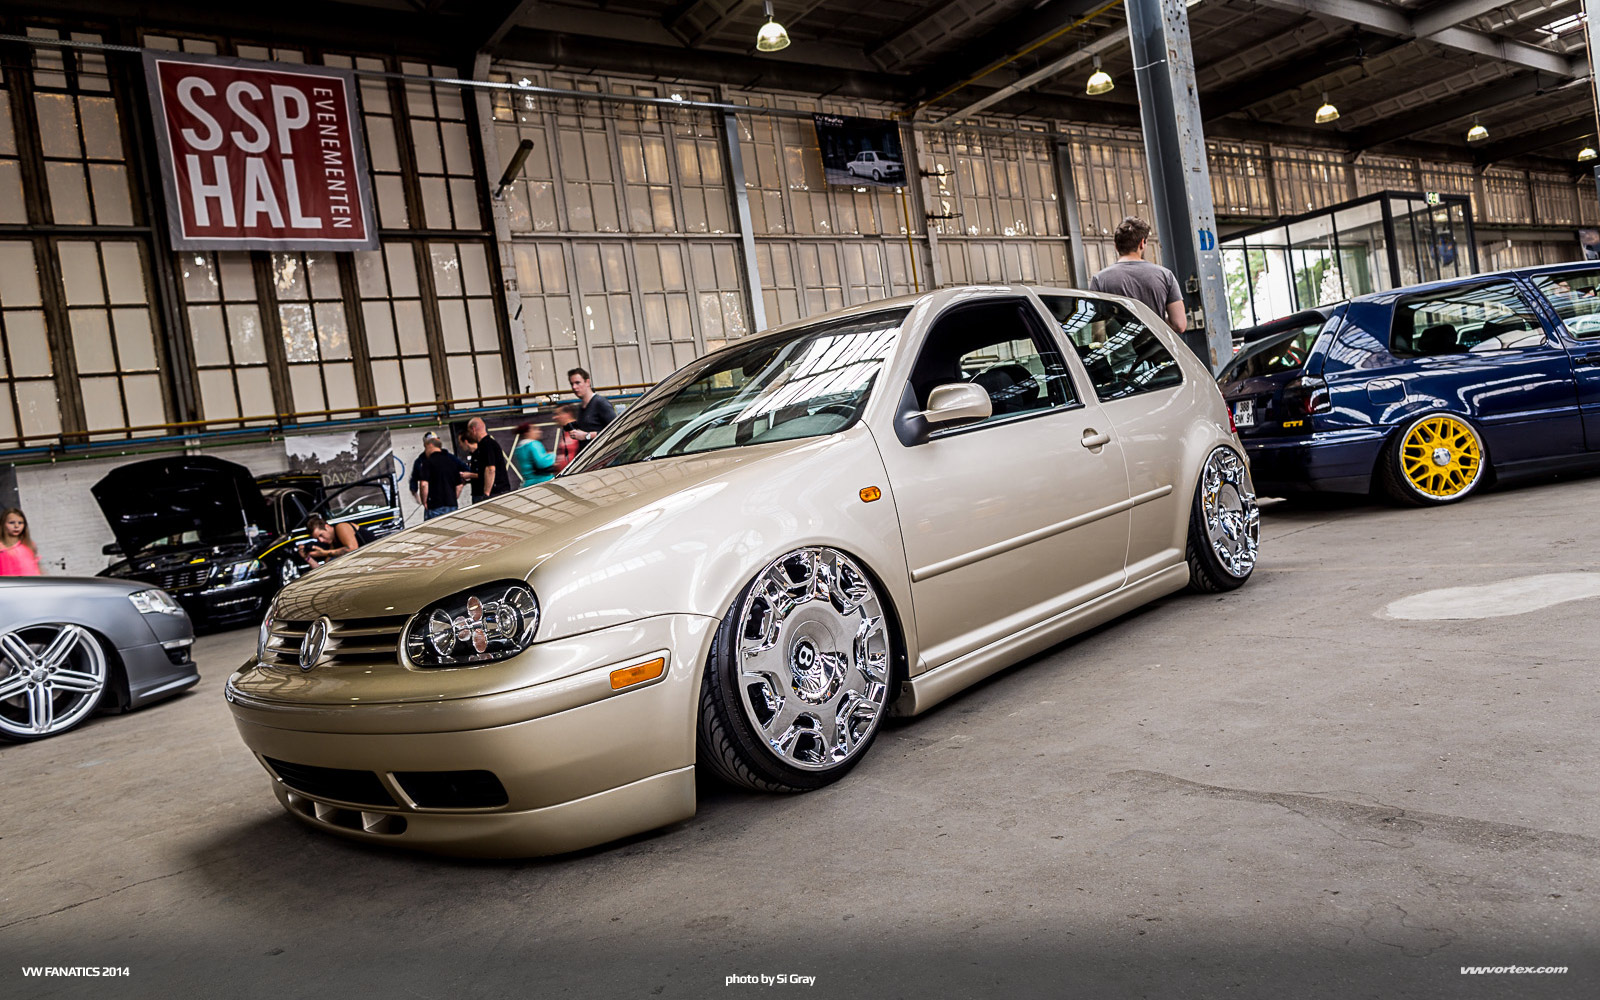 VWFanatics-2014-Si-Gray-392